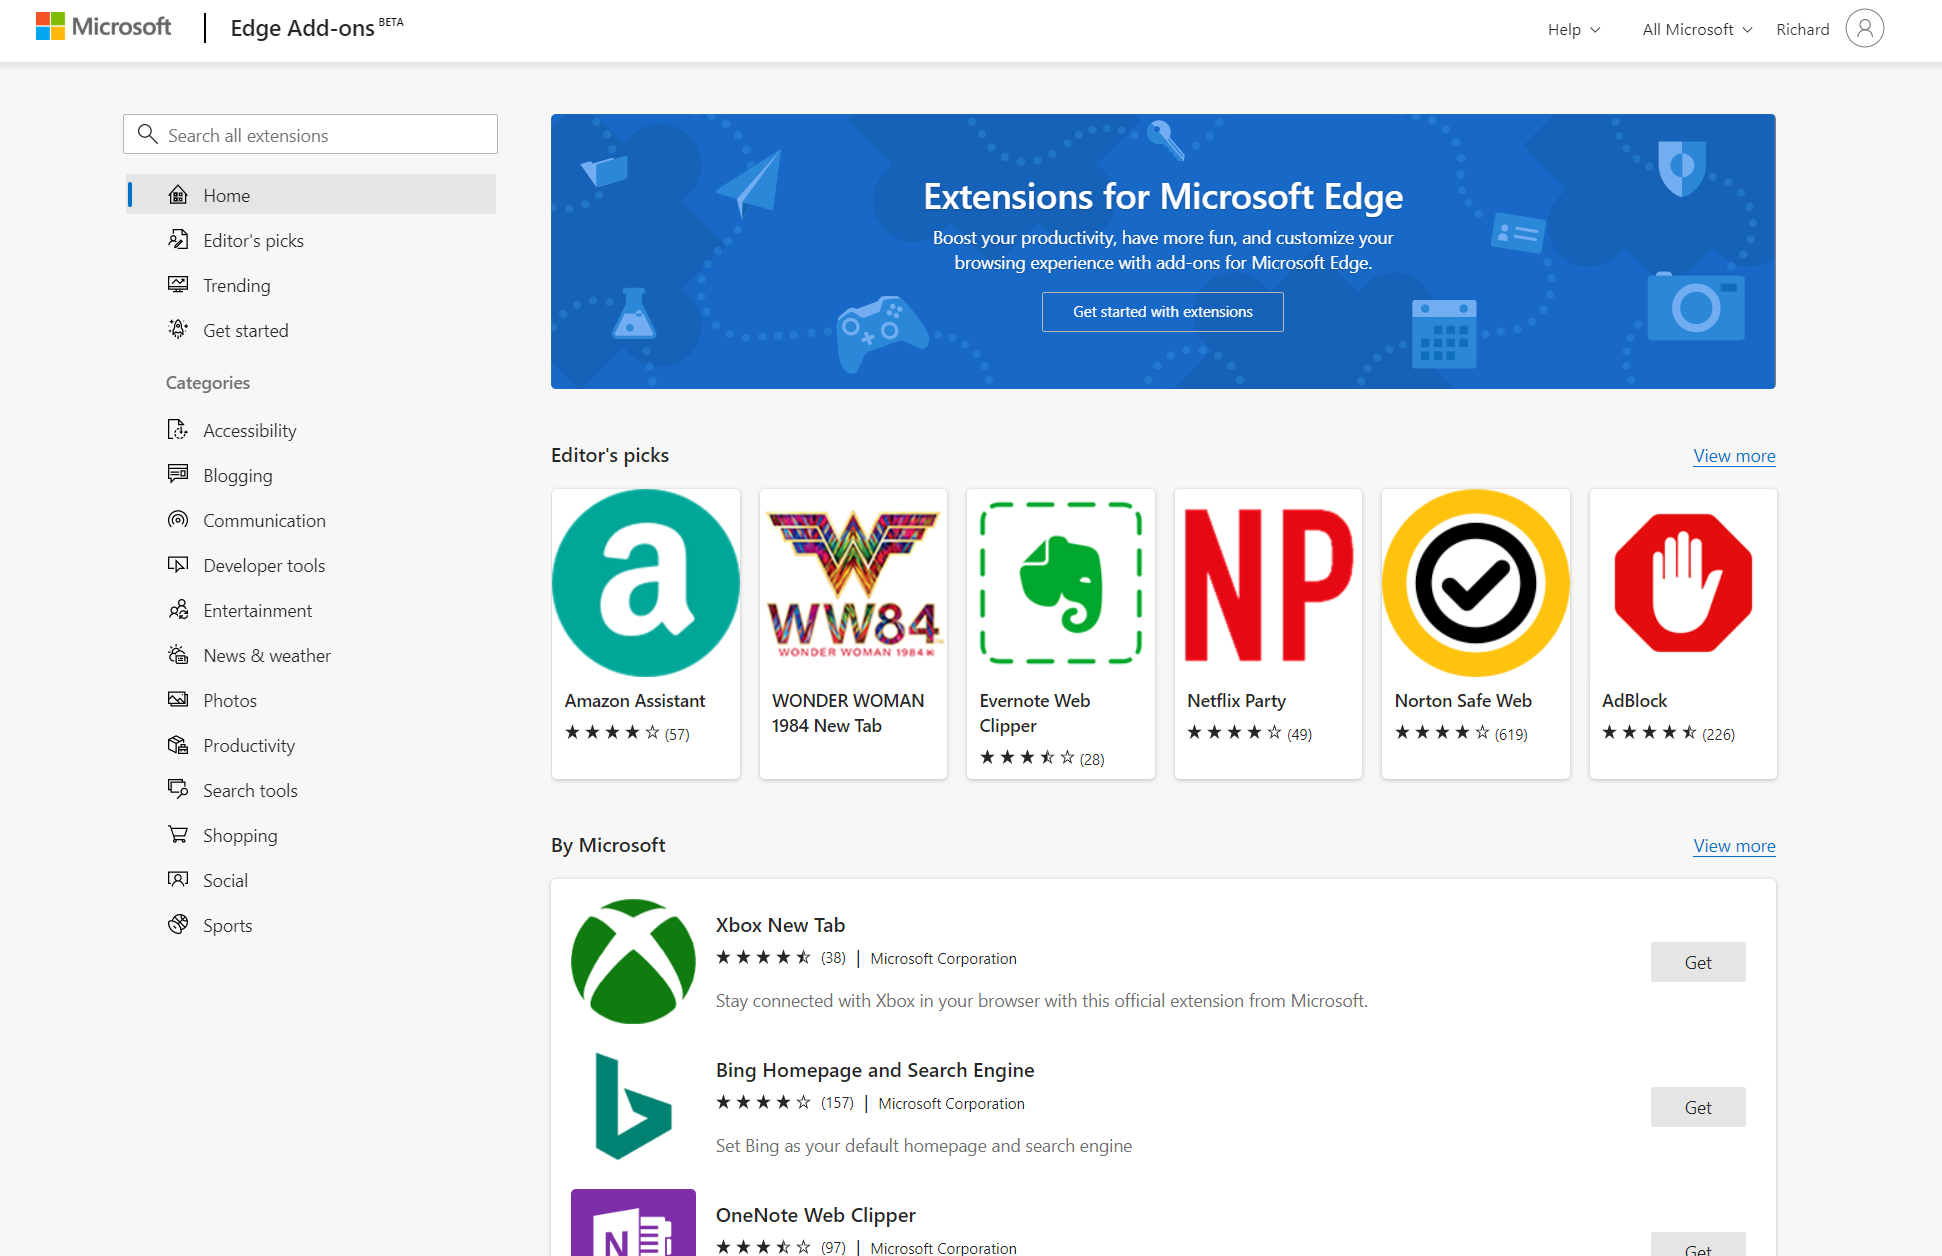 Microsoft Edge Add-ons Hero